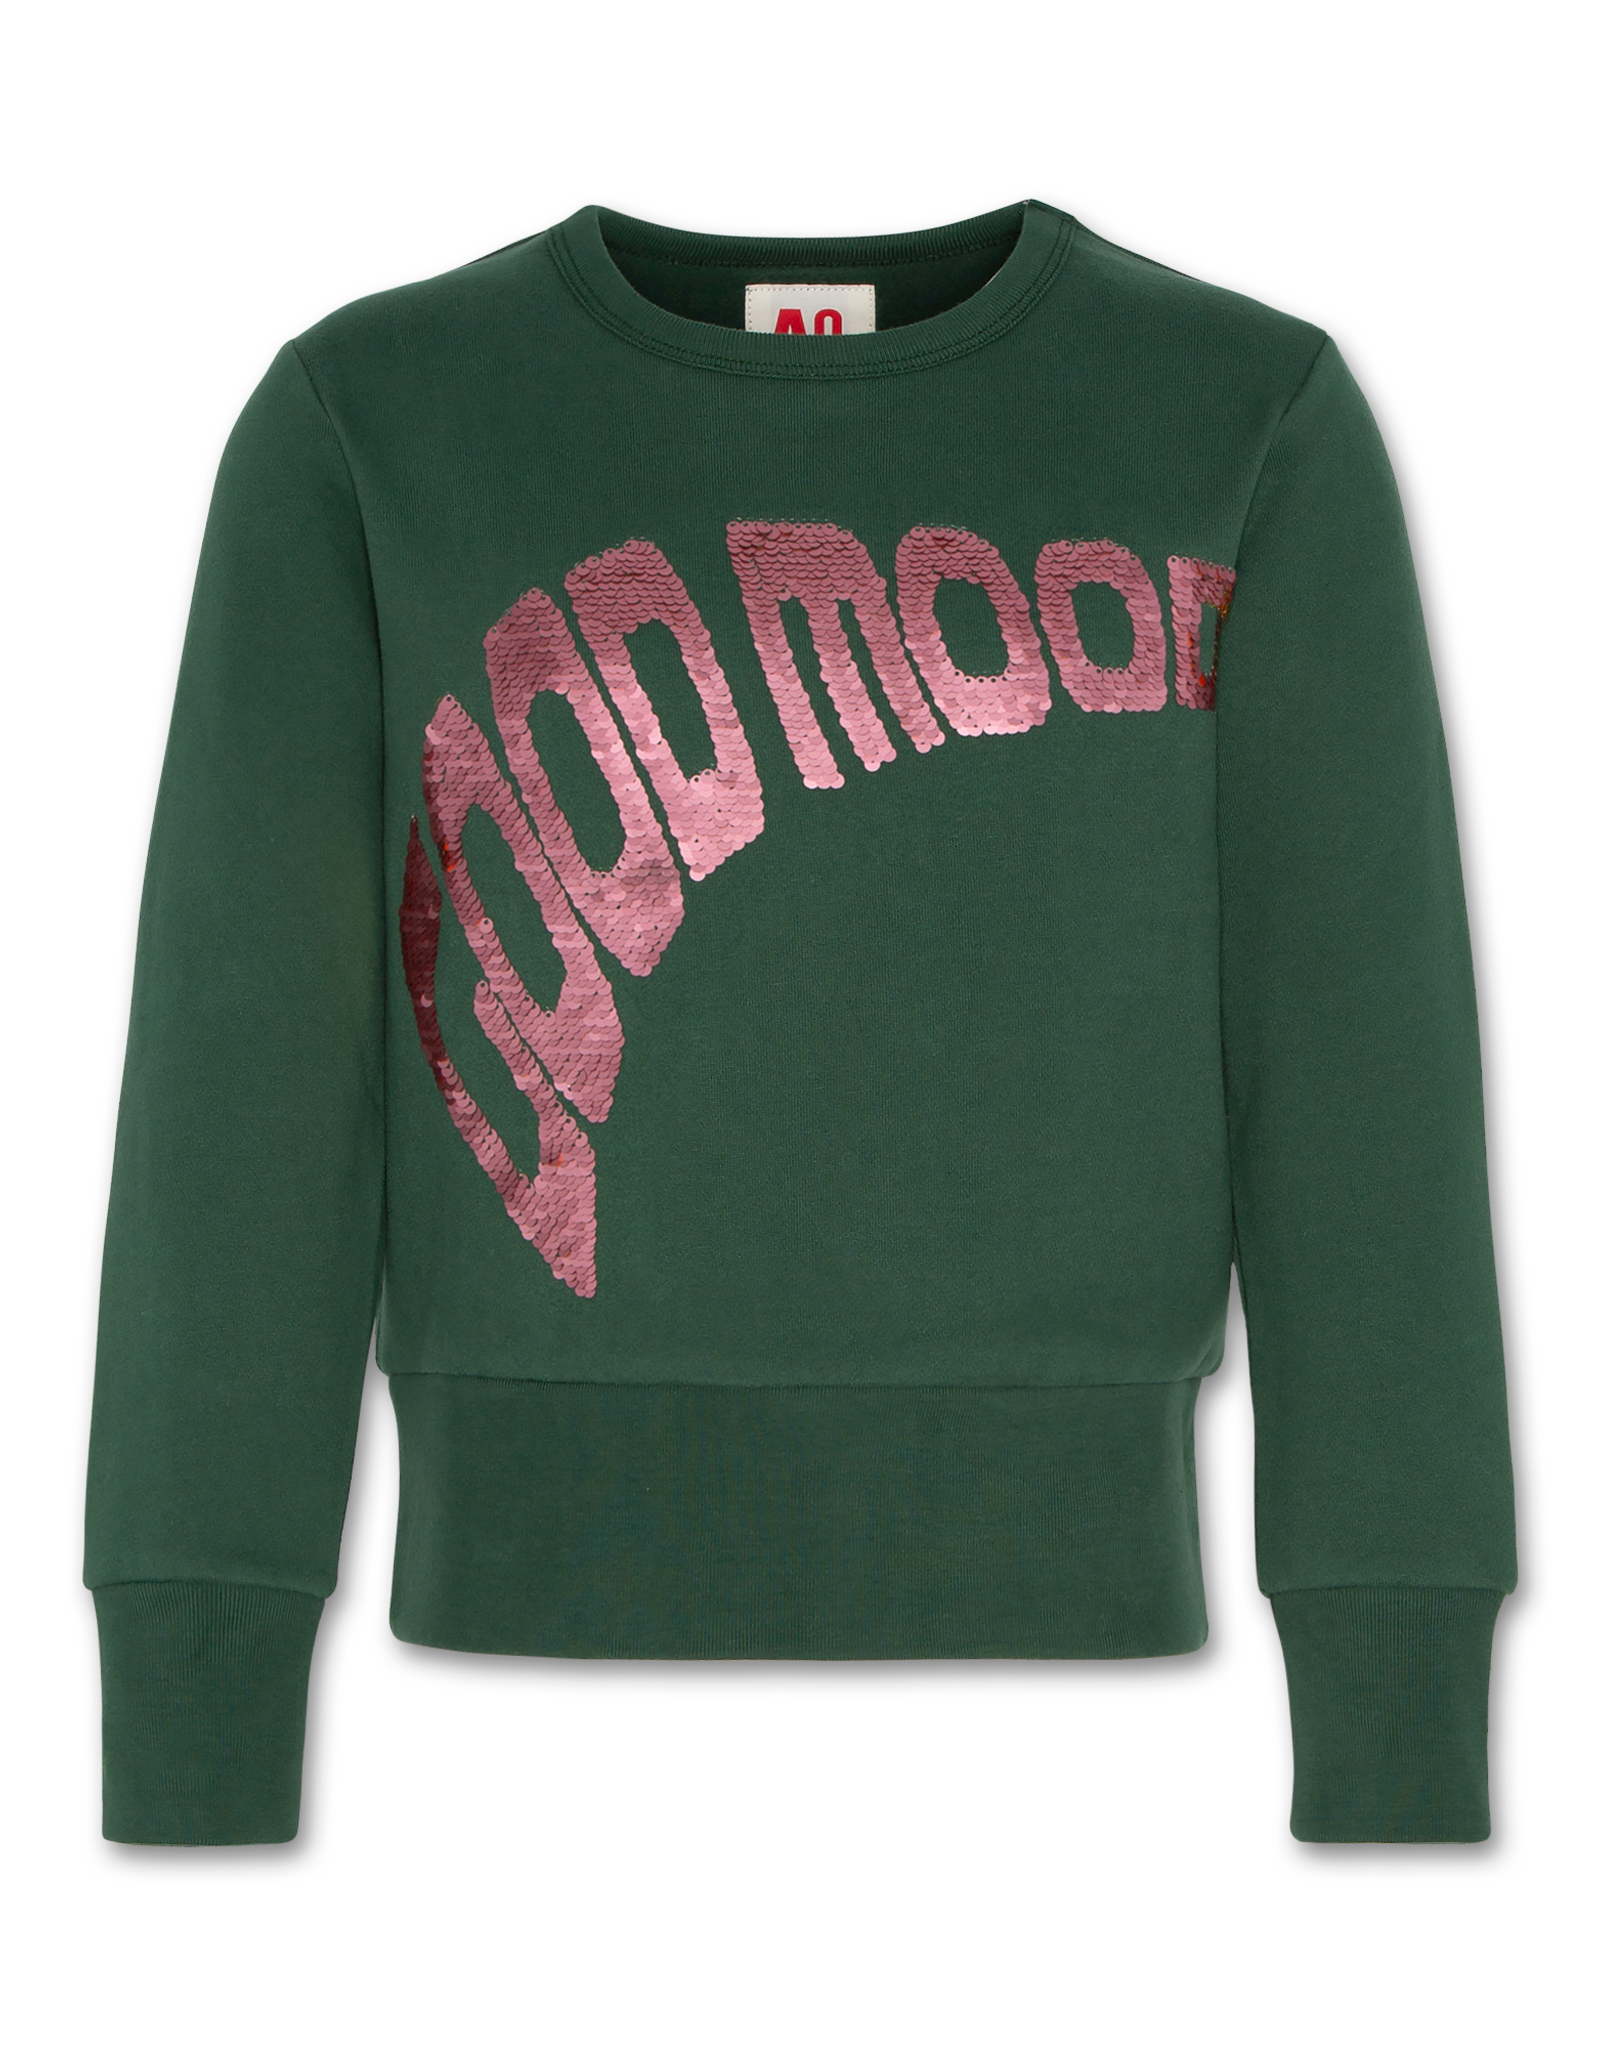 American Outfitters AO sweater good green